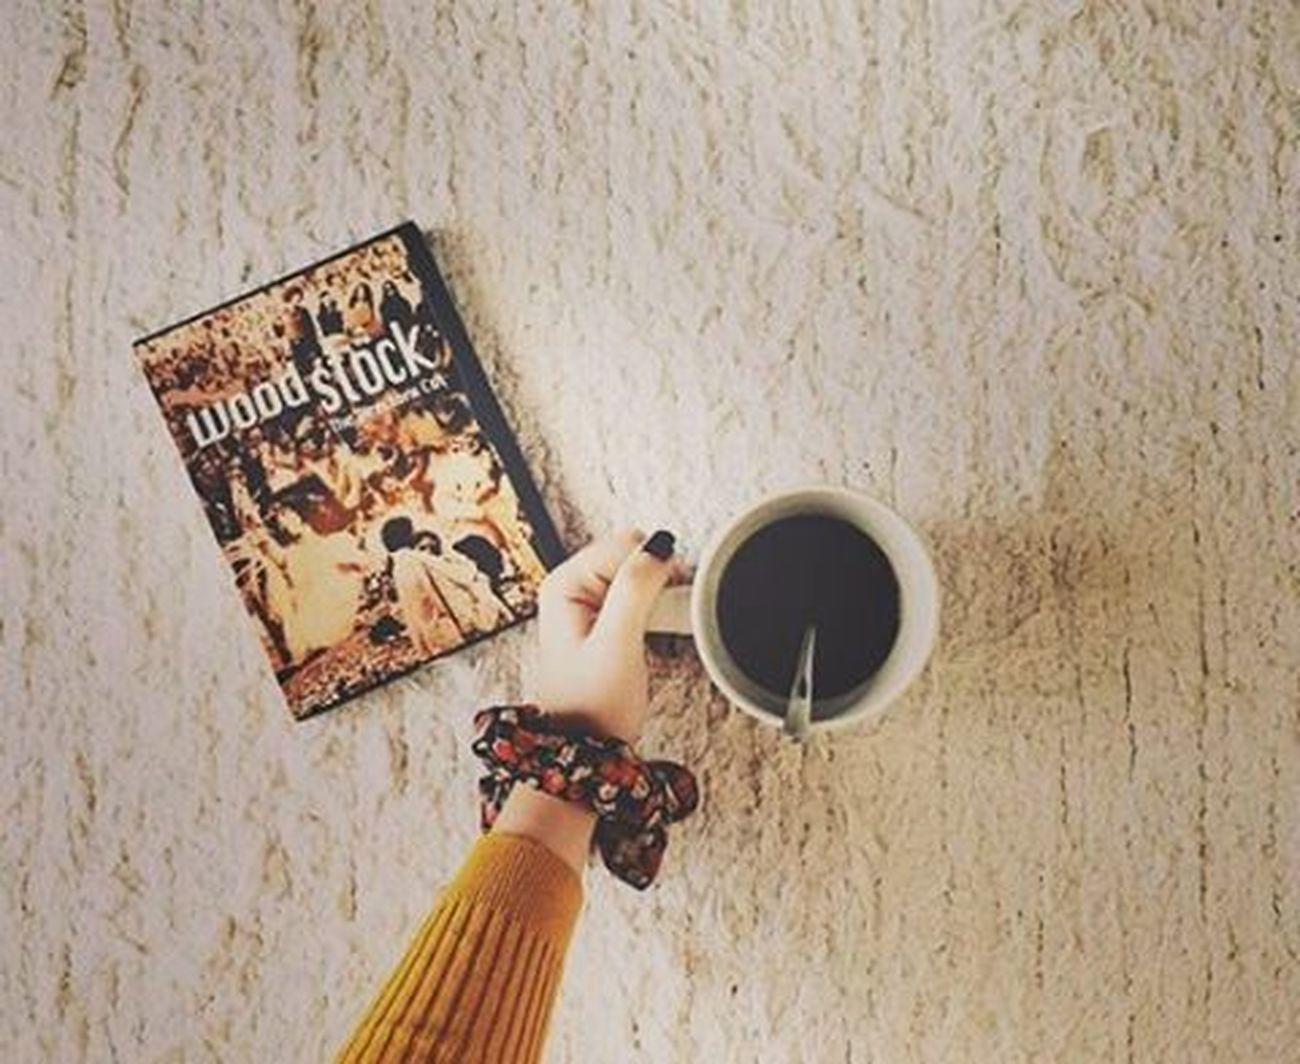 Woodstock.🍵°•°{January 6th} αθηνούλα μεταξουργείο Homesweethome Woodstock Hotcoffee Vintagephotography Myhand MyPhotography Loveisintheair VSCO Vscocam Vscolove Vscomood Vscocoffee Vscovintage Instagreece Instaathens Instalifo